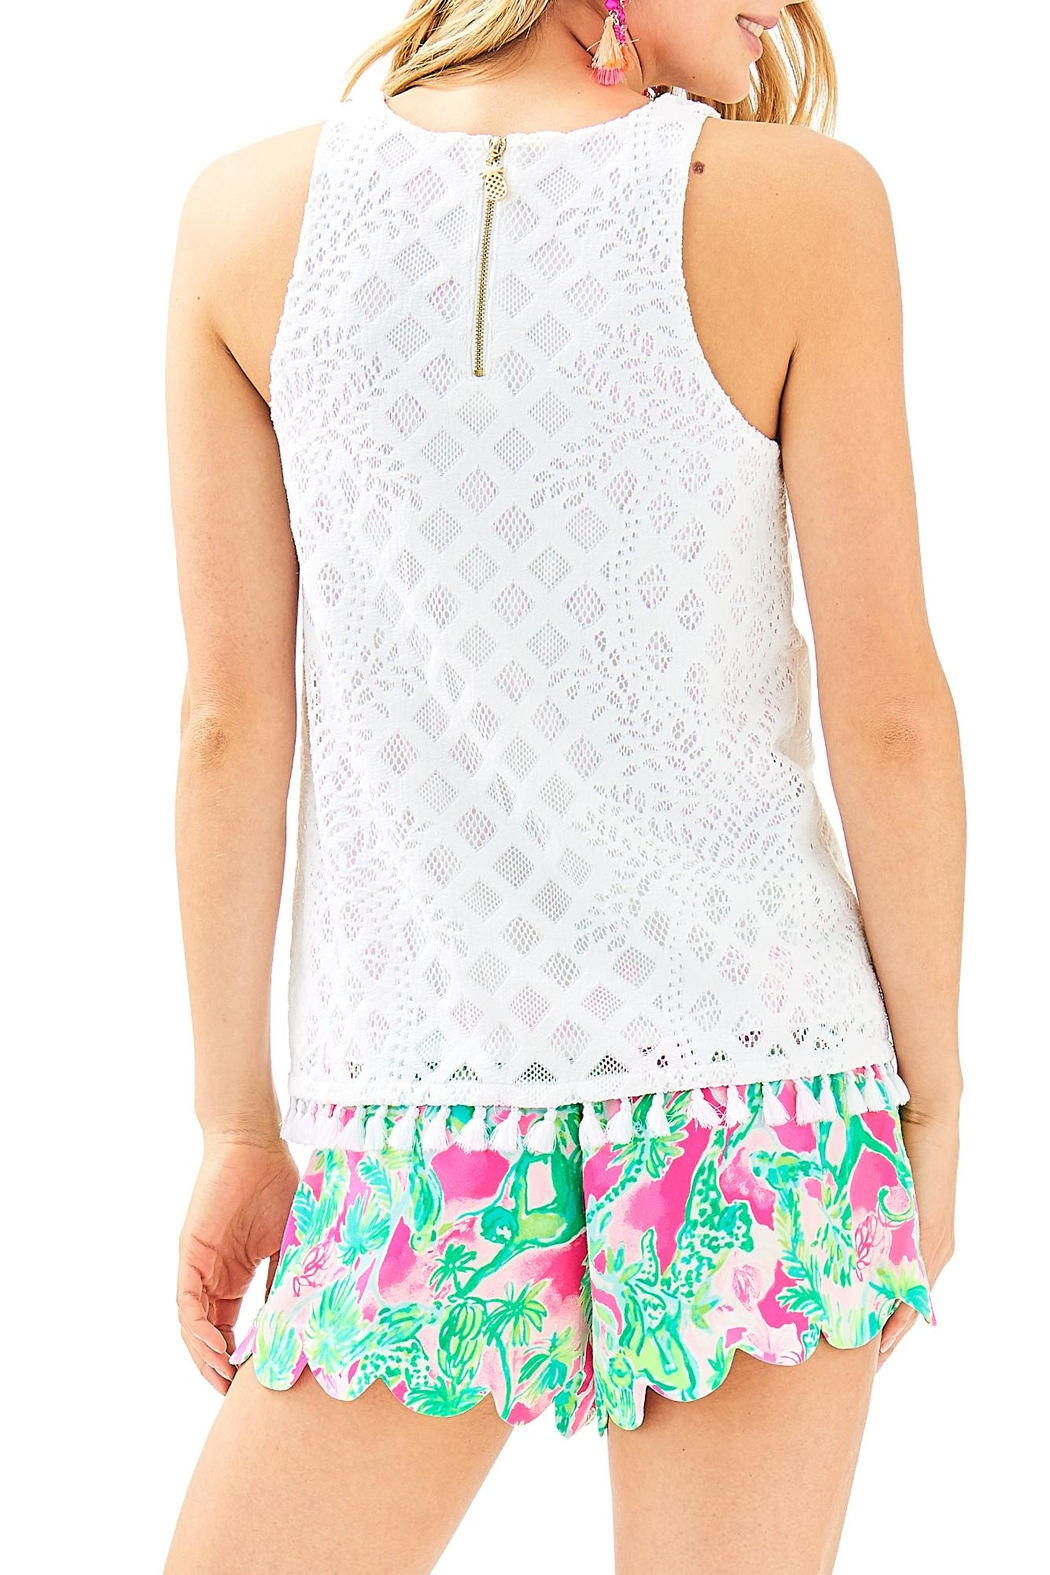 Lilly Pulitzer Lynn Top - Front Full Image